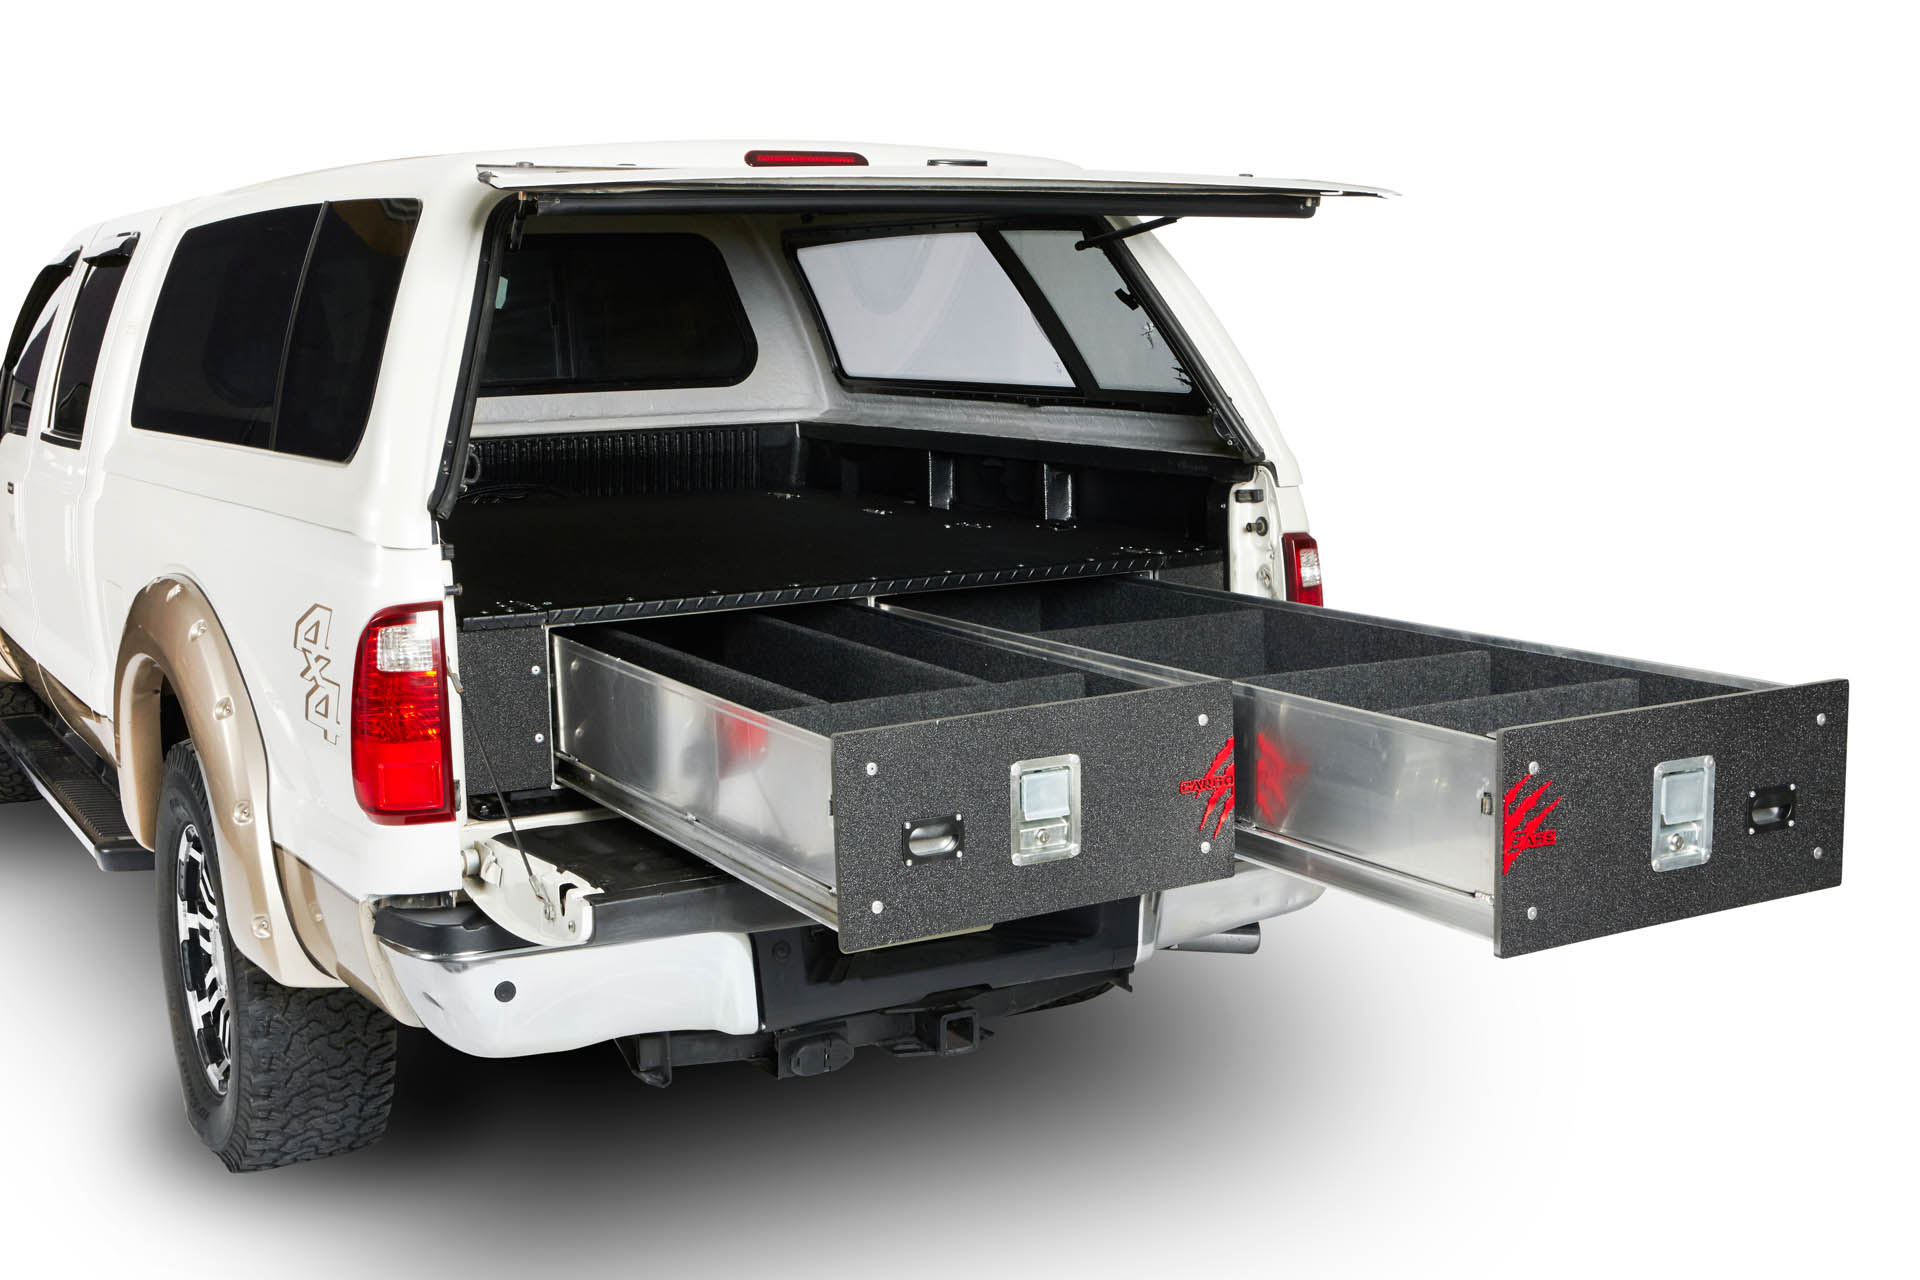 Cargo Ease Cargo Locker Base 12 Inch Single Drawer System 07-Pres Toyota Tundra Crew Max